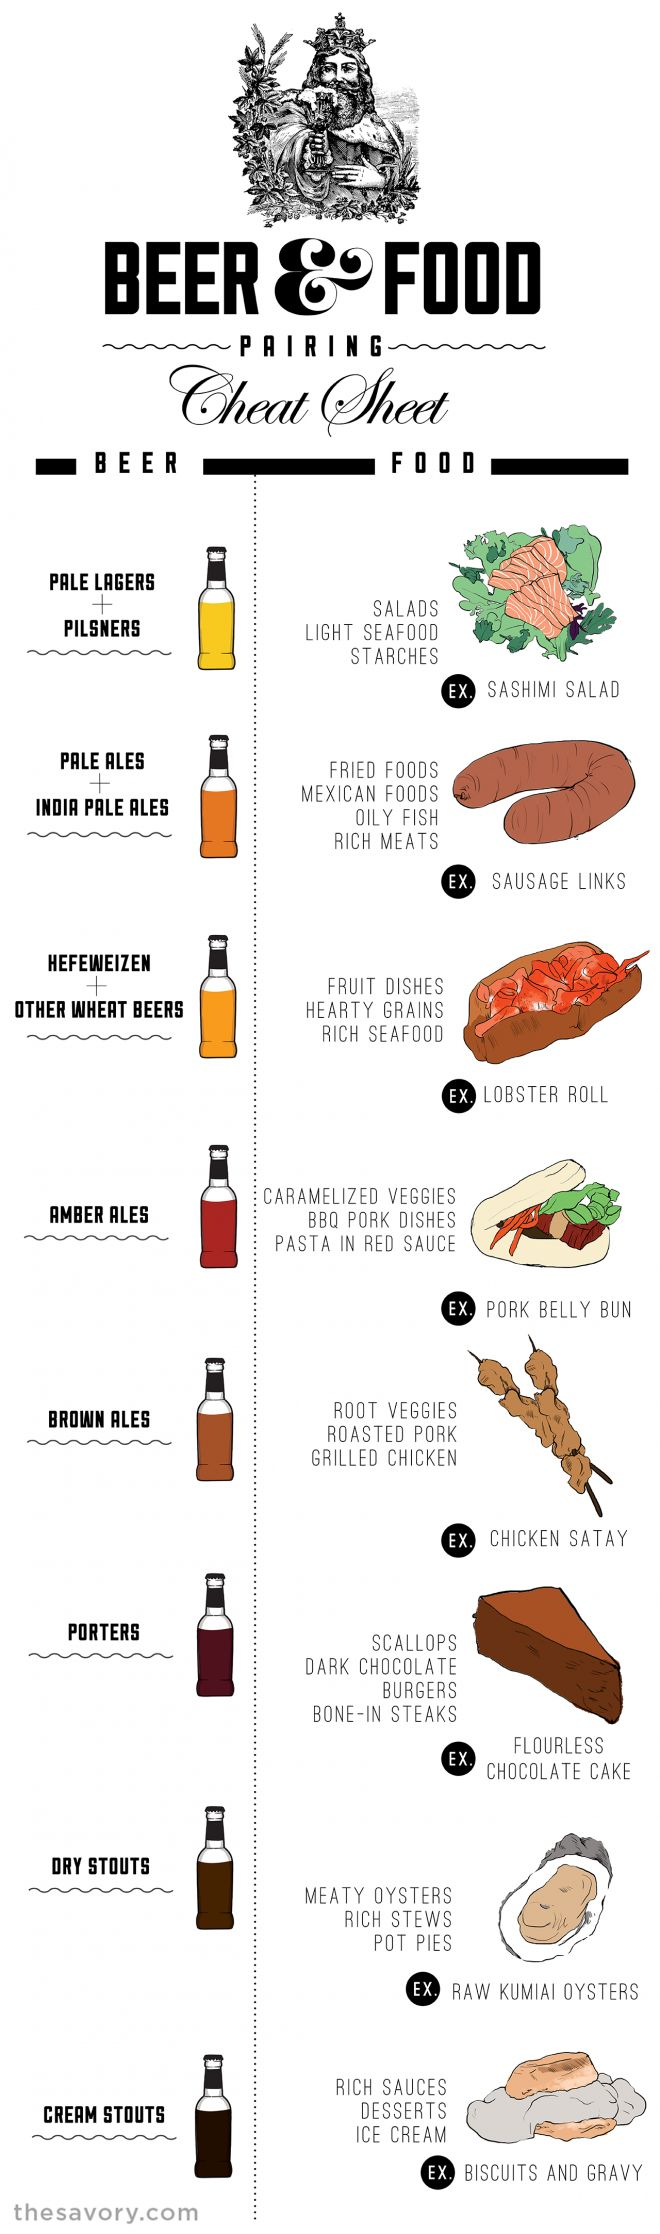 Beer & food pairing chart